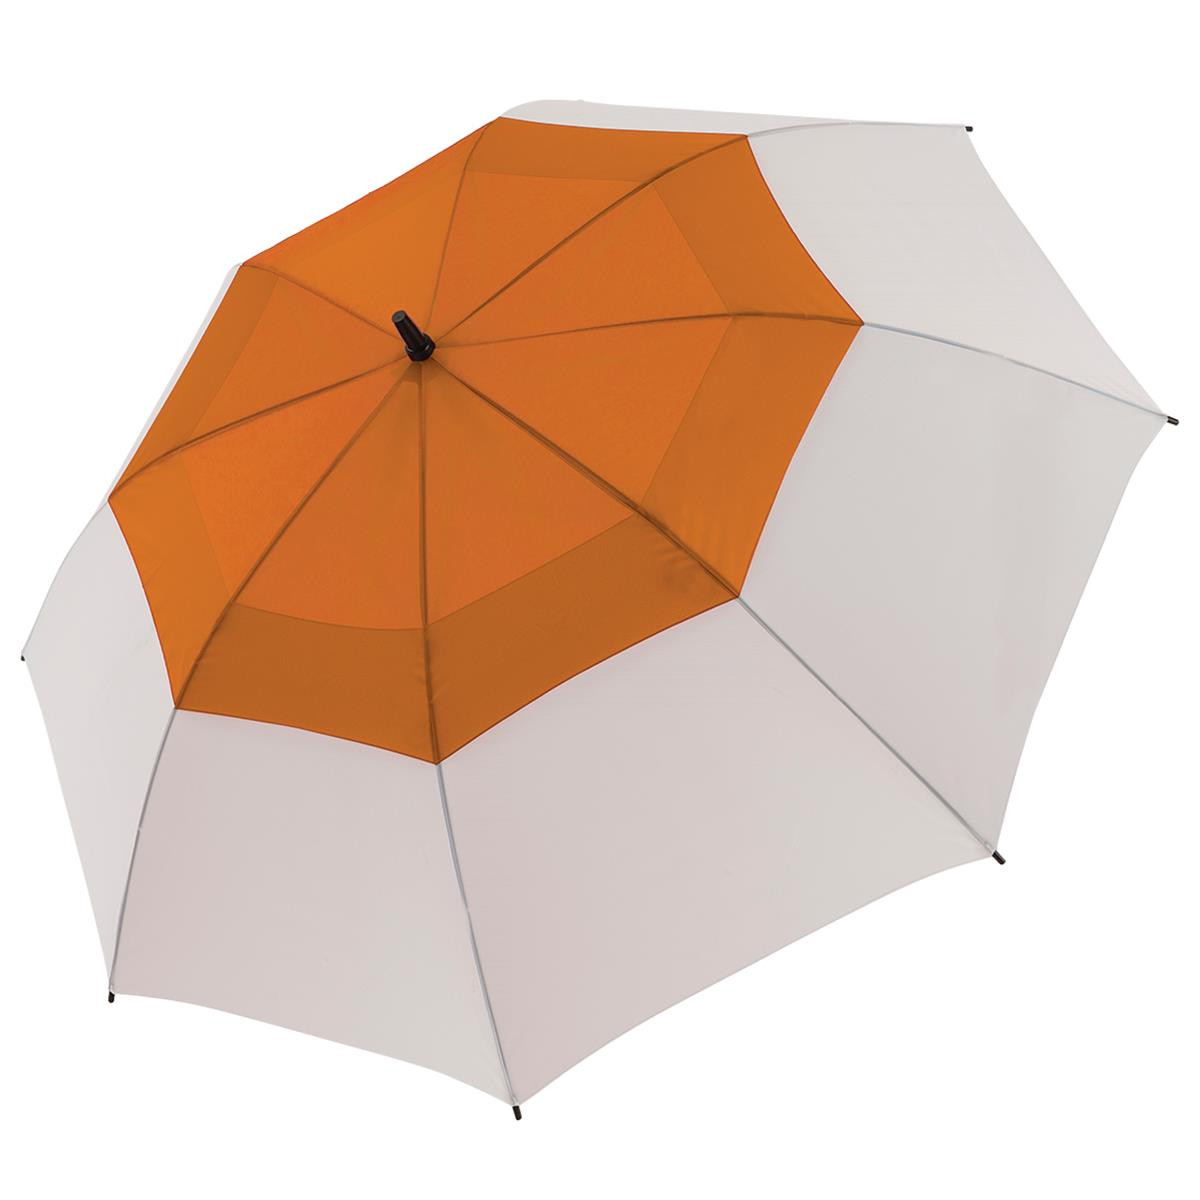 2105 Umbra - Sovereign Umbrella / Fibreglass Shaft / Auto Open